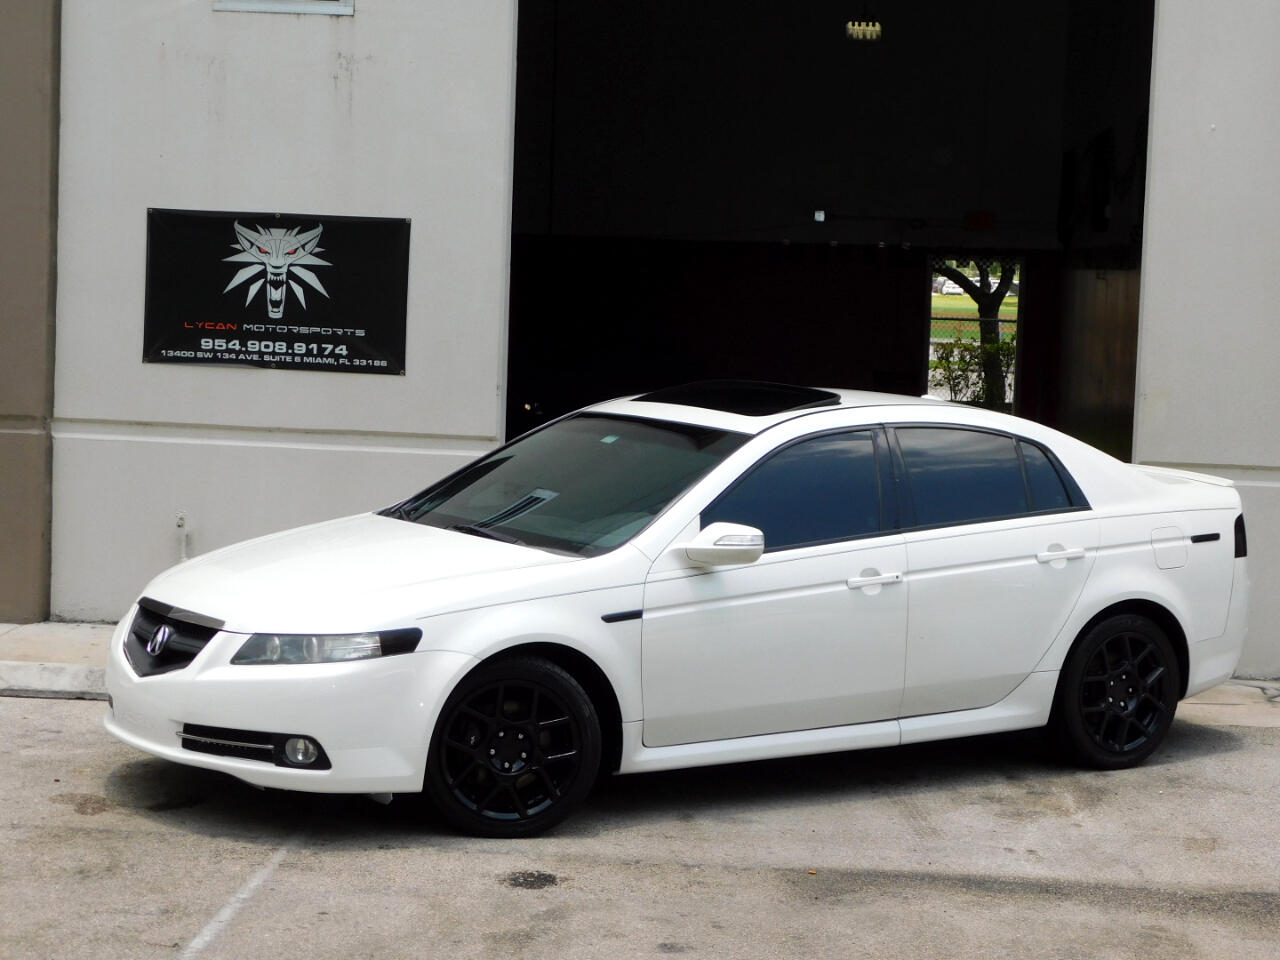 Used 2007 Acura Tl Type S 5 Speed At For Sale In Miami Fl 33186 Lycan Motorsports